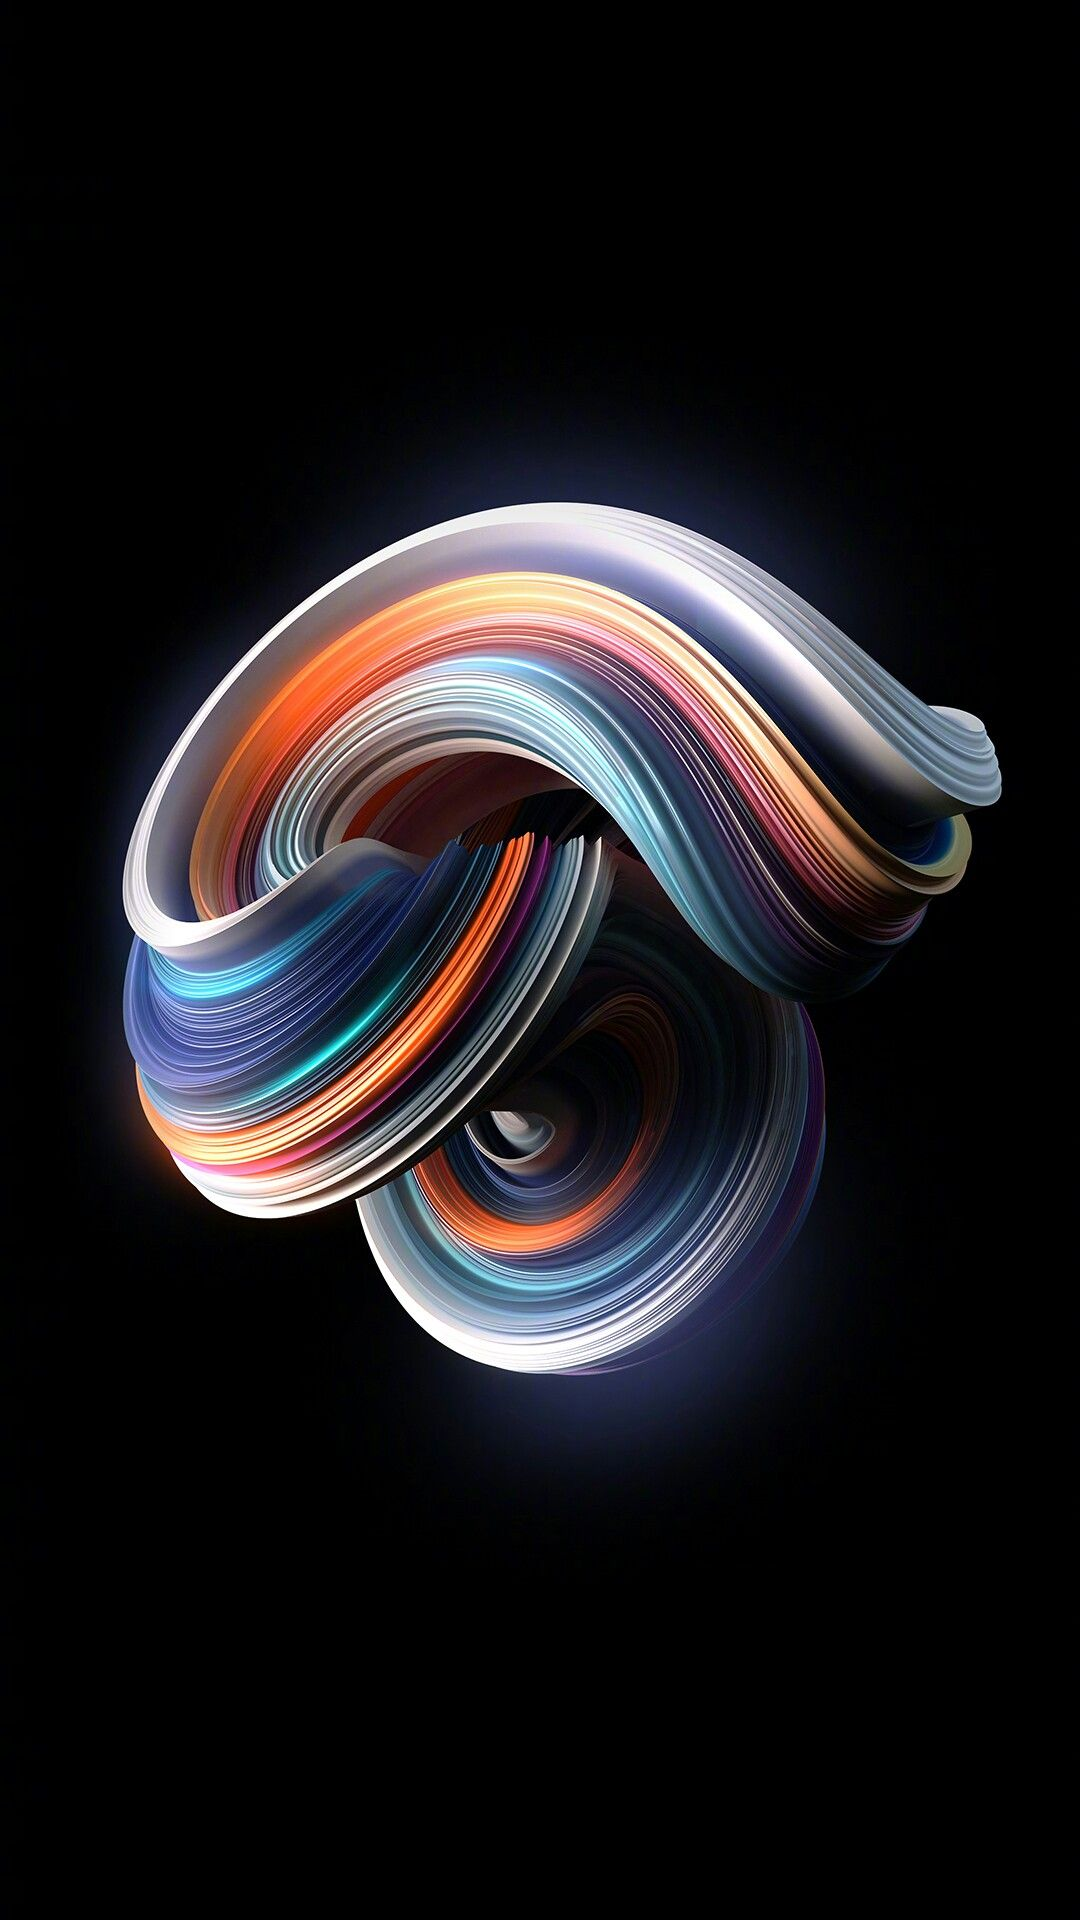 Xiaomi mi note 3 Oneplus wallpapers, Abstract iphone